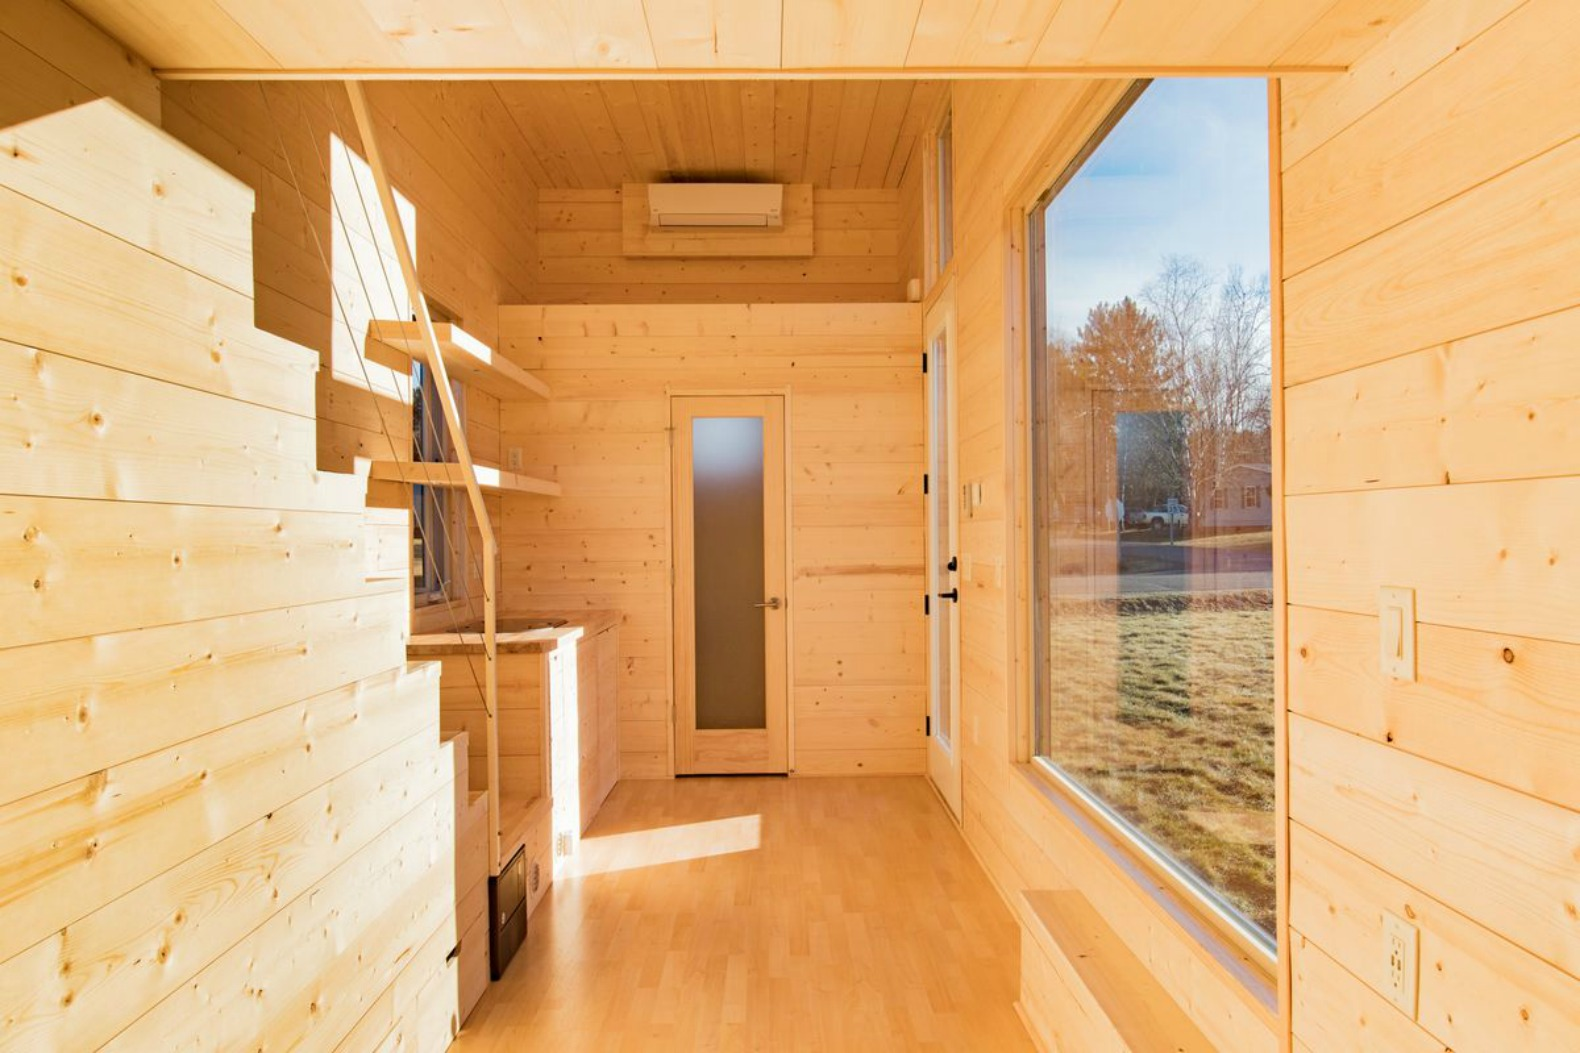 Nomad Tiny Homes >> Cute zen tiny house is a steal at $49K